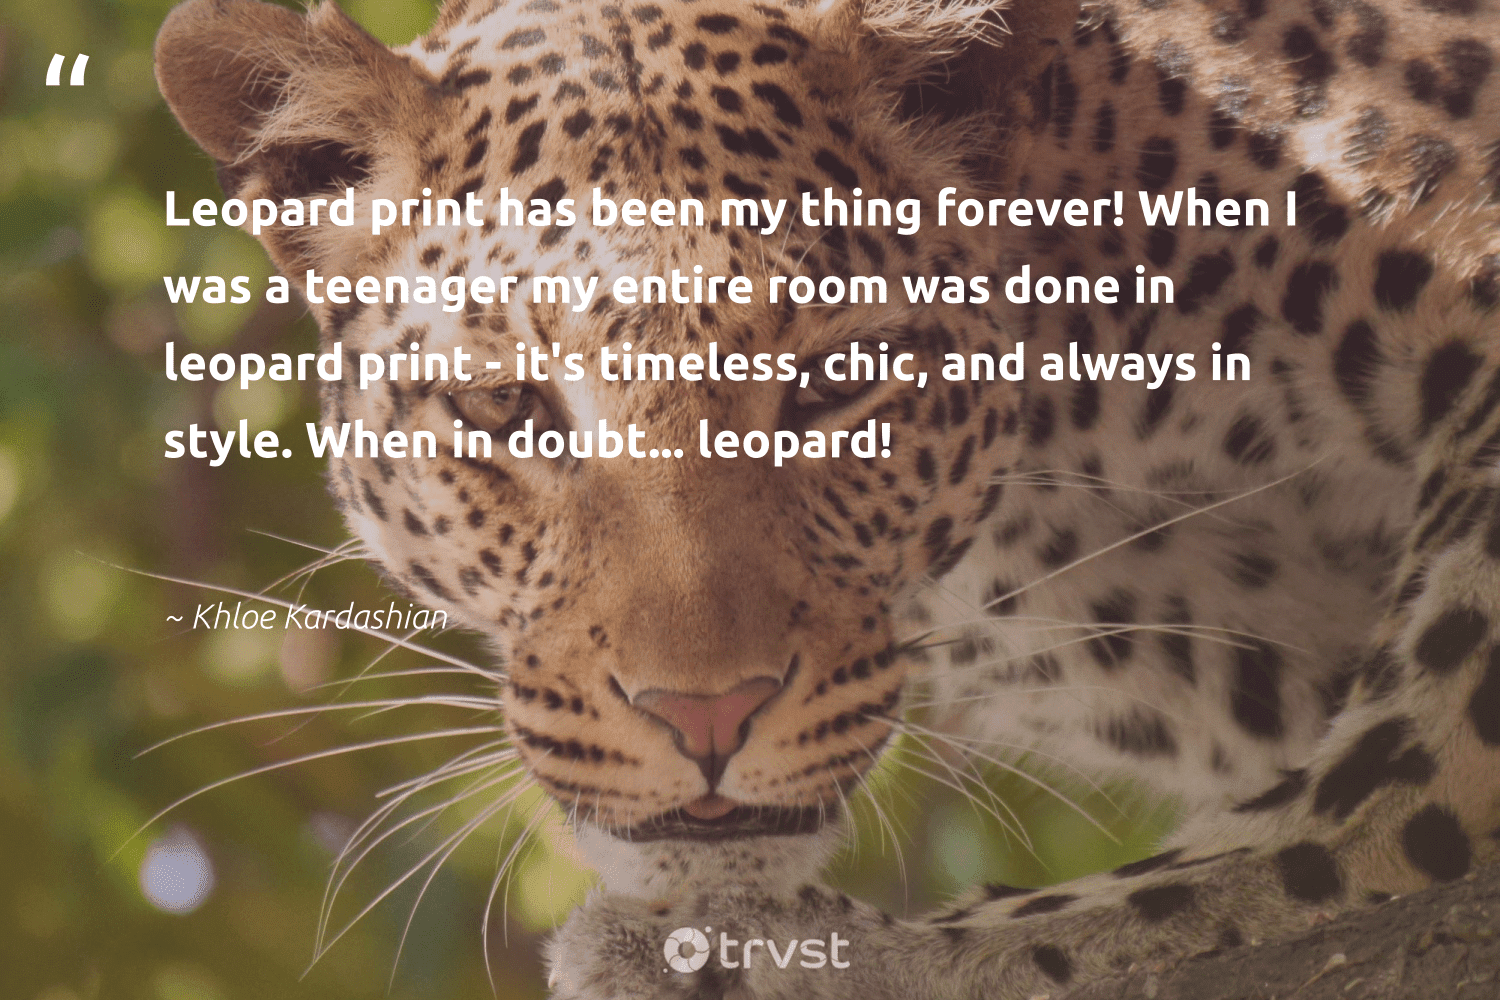 """""""Leopard print has been my thing forever! When I was a teenager my entire room was done in leopard print - it's timeless, chic, and always in style. When in doubt... leopard!""""  - Khloe Kardashian #trvst #quotes #leopard #wild #socialchange #protectnature #takeaction #biodiversity #bethechange #perfectnature #impact #bigcats"""